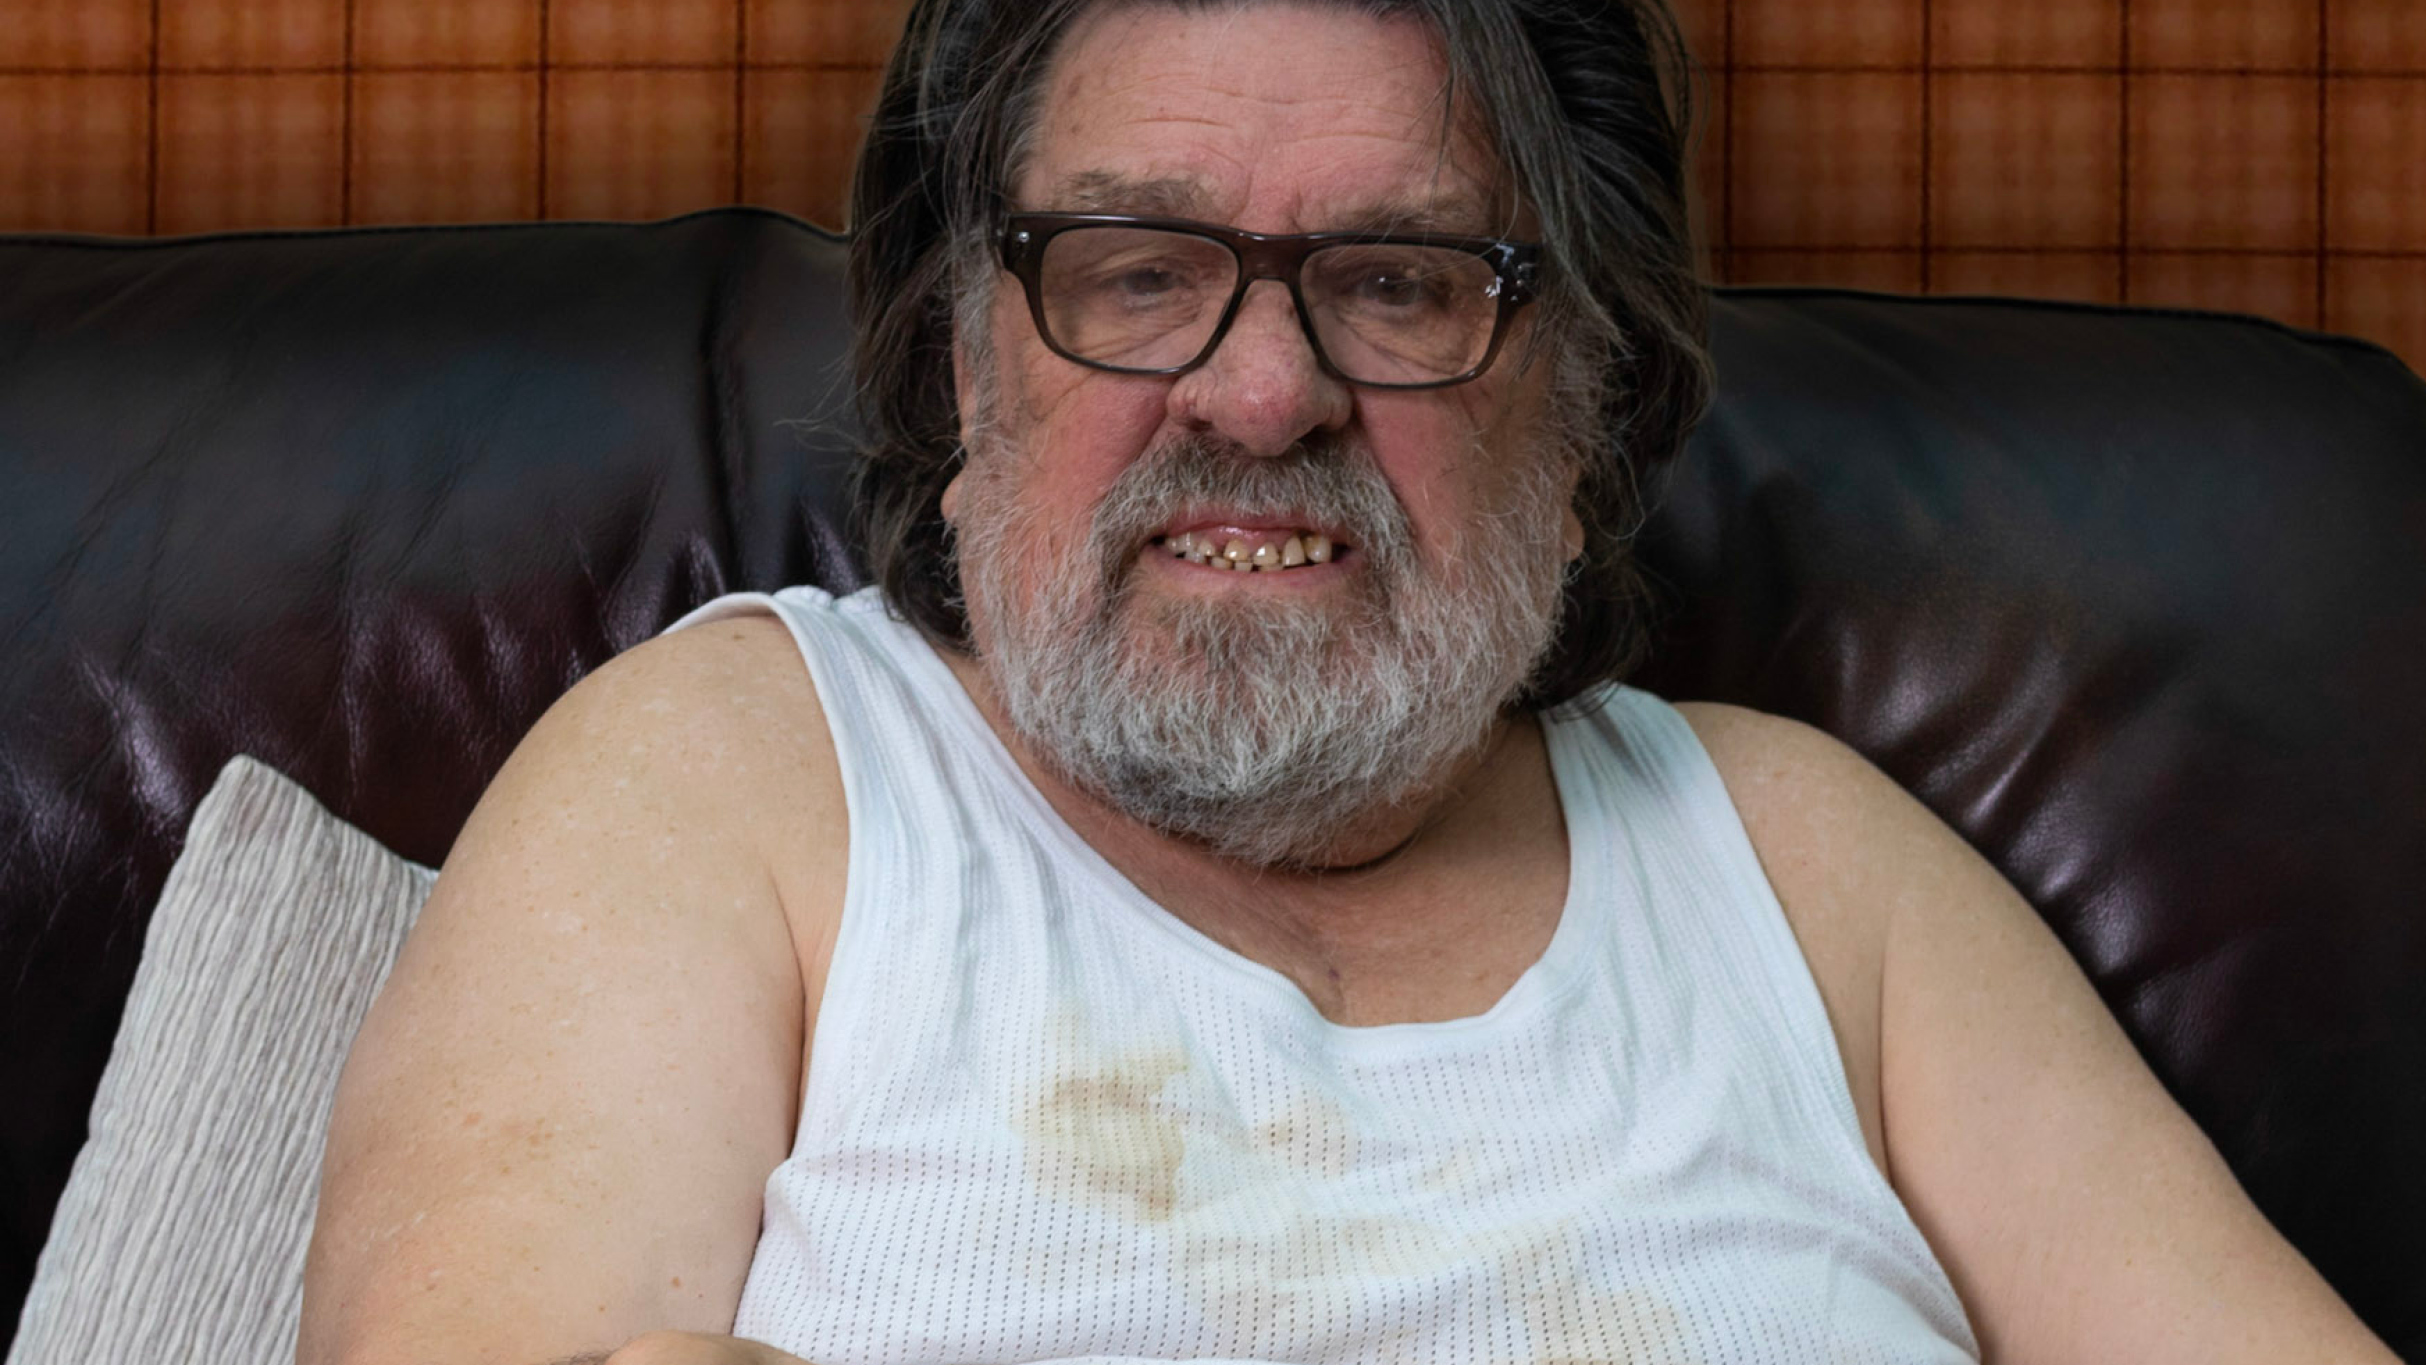 Ricky Tomlinson comes to the INEC Acoustic Club on October 26th